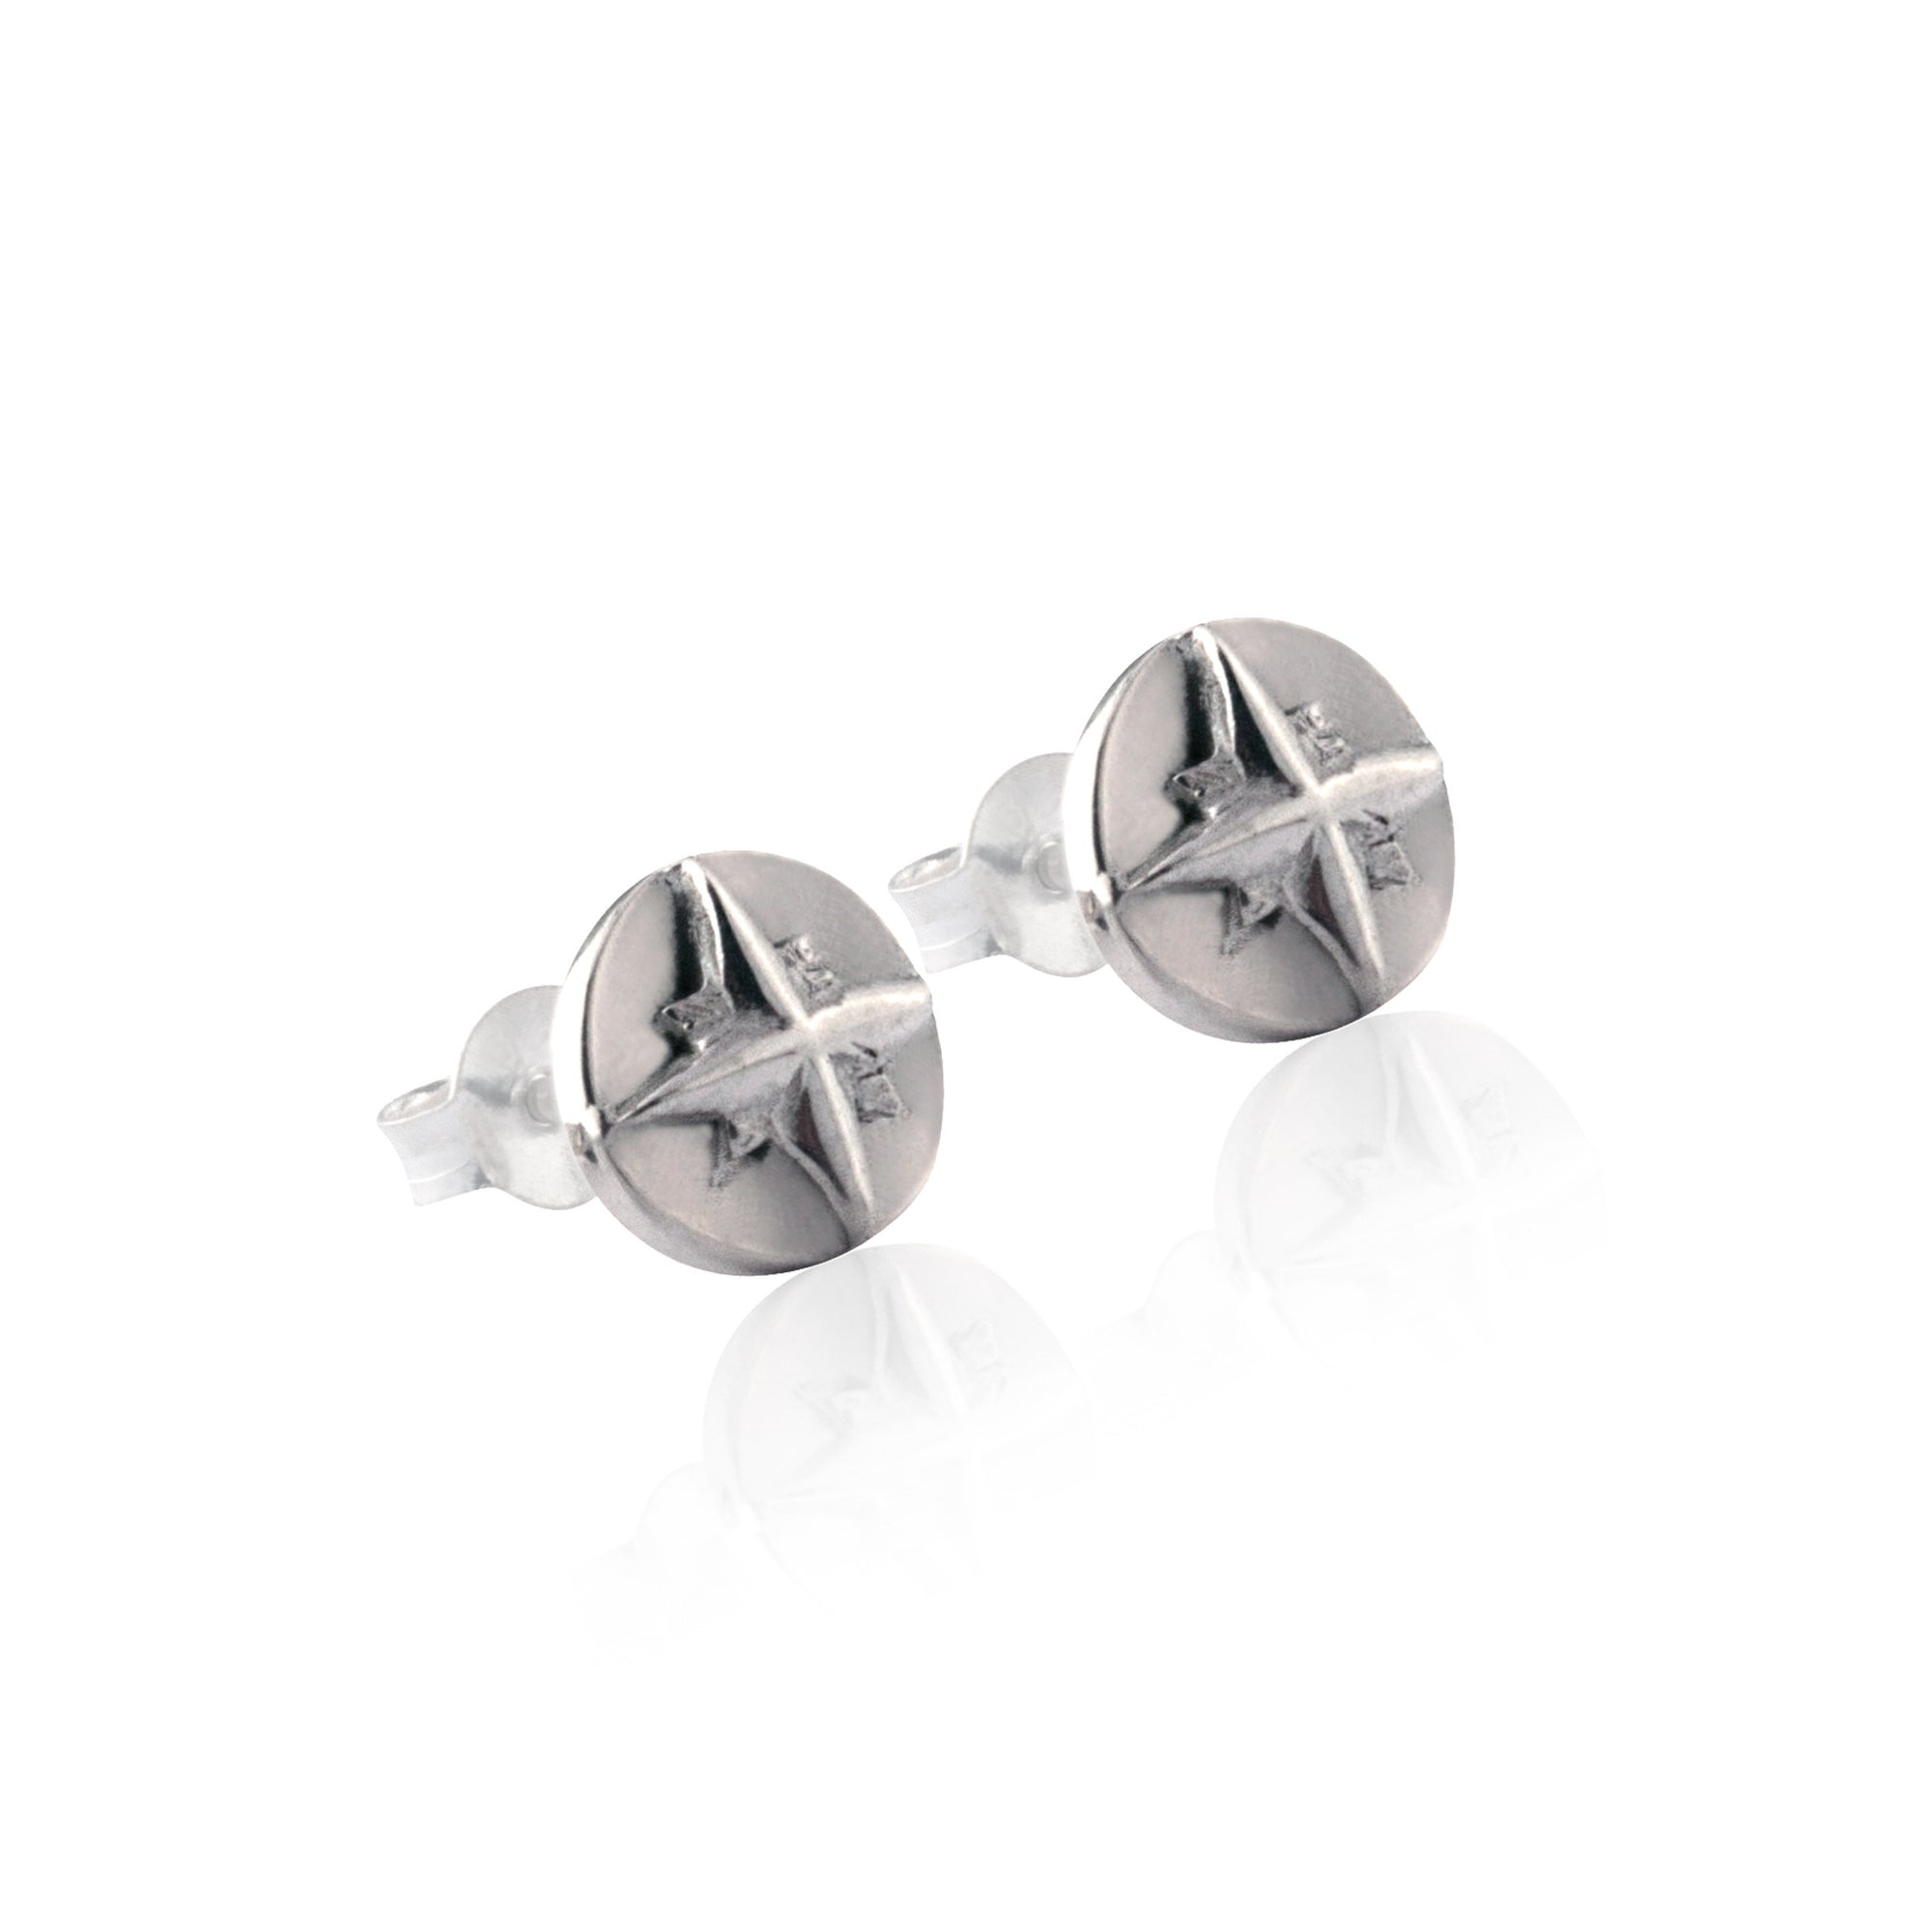 La Luna Rose Compass Earrings - Silver